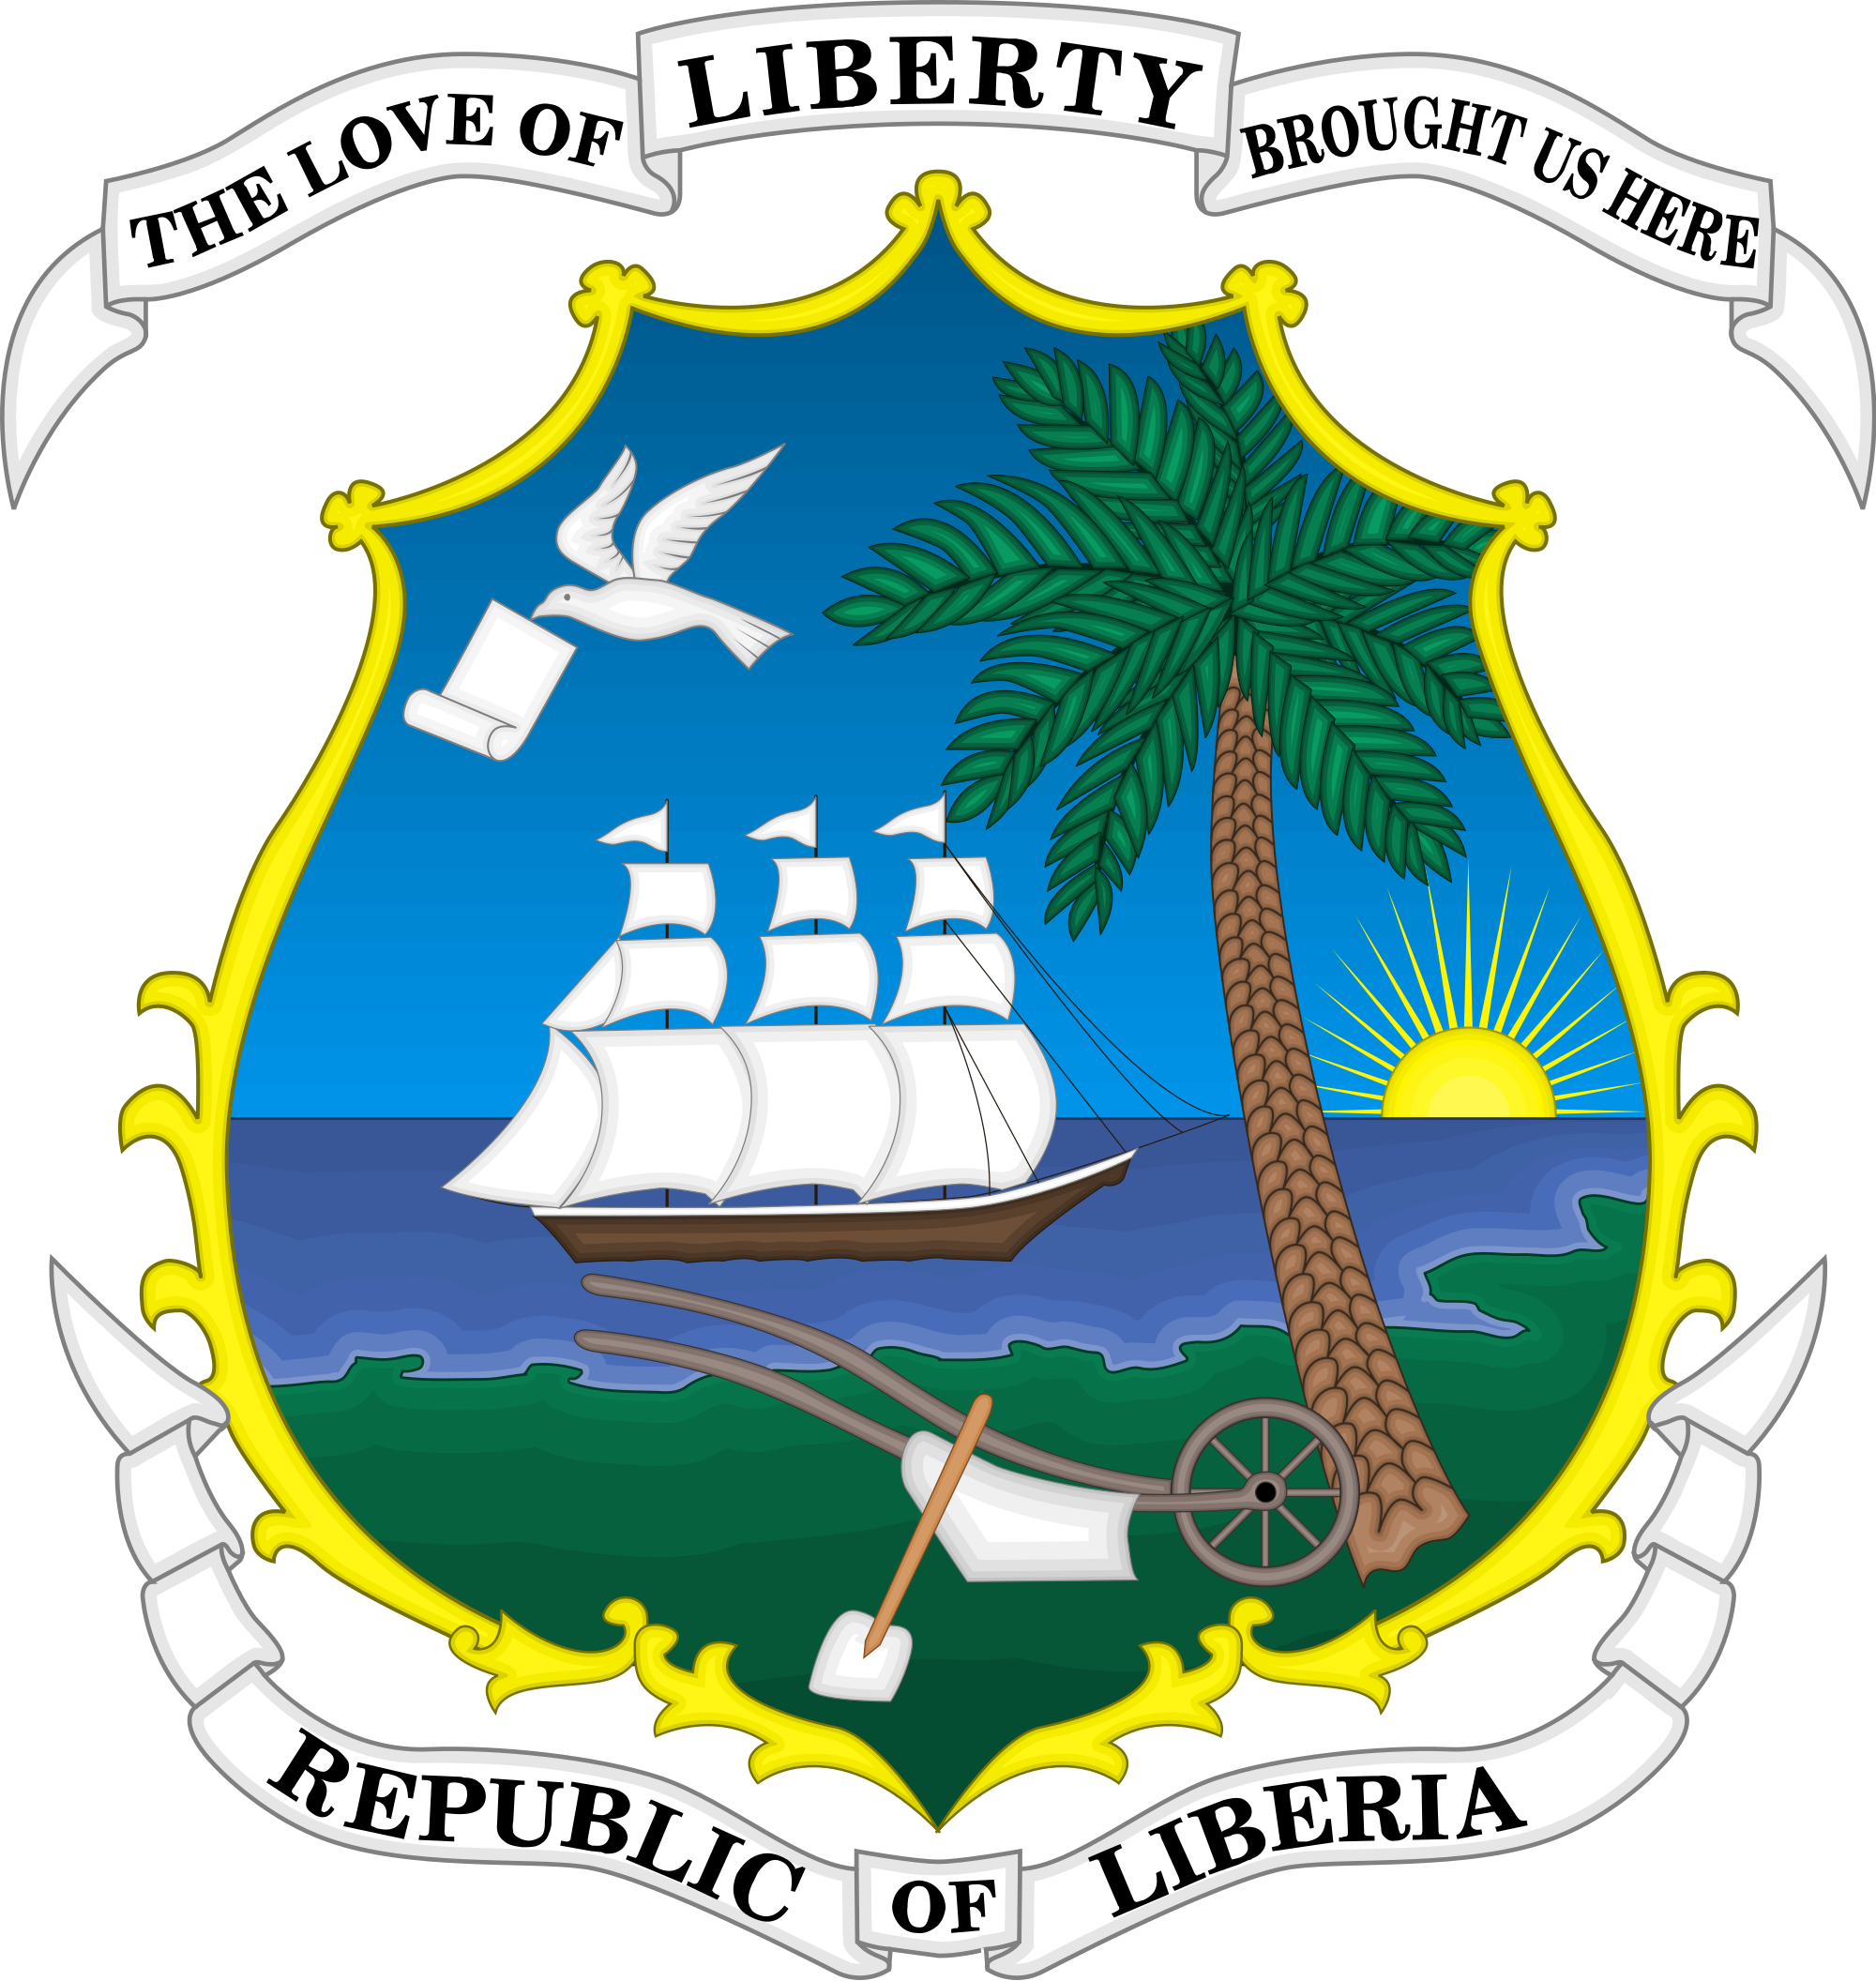 House of representatives liberia. Democracy clipart class vice president